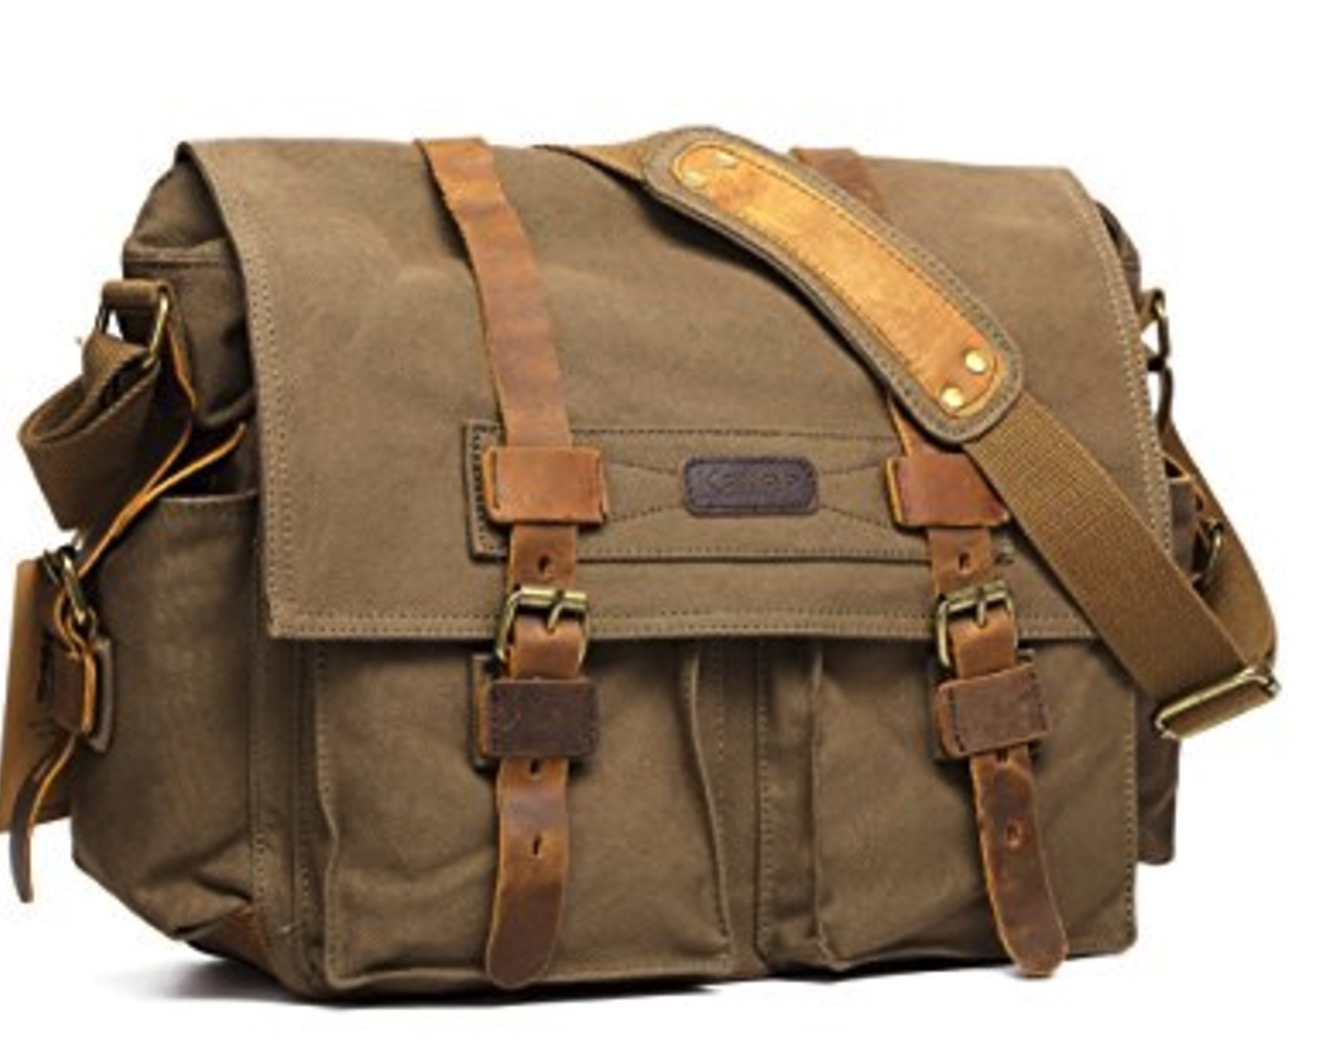 Kattee Canvas Leather Bag, best leather camera bags, leather bags for camera, leather camera backpack